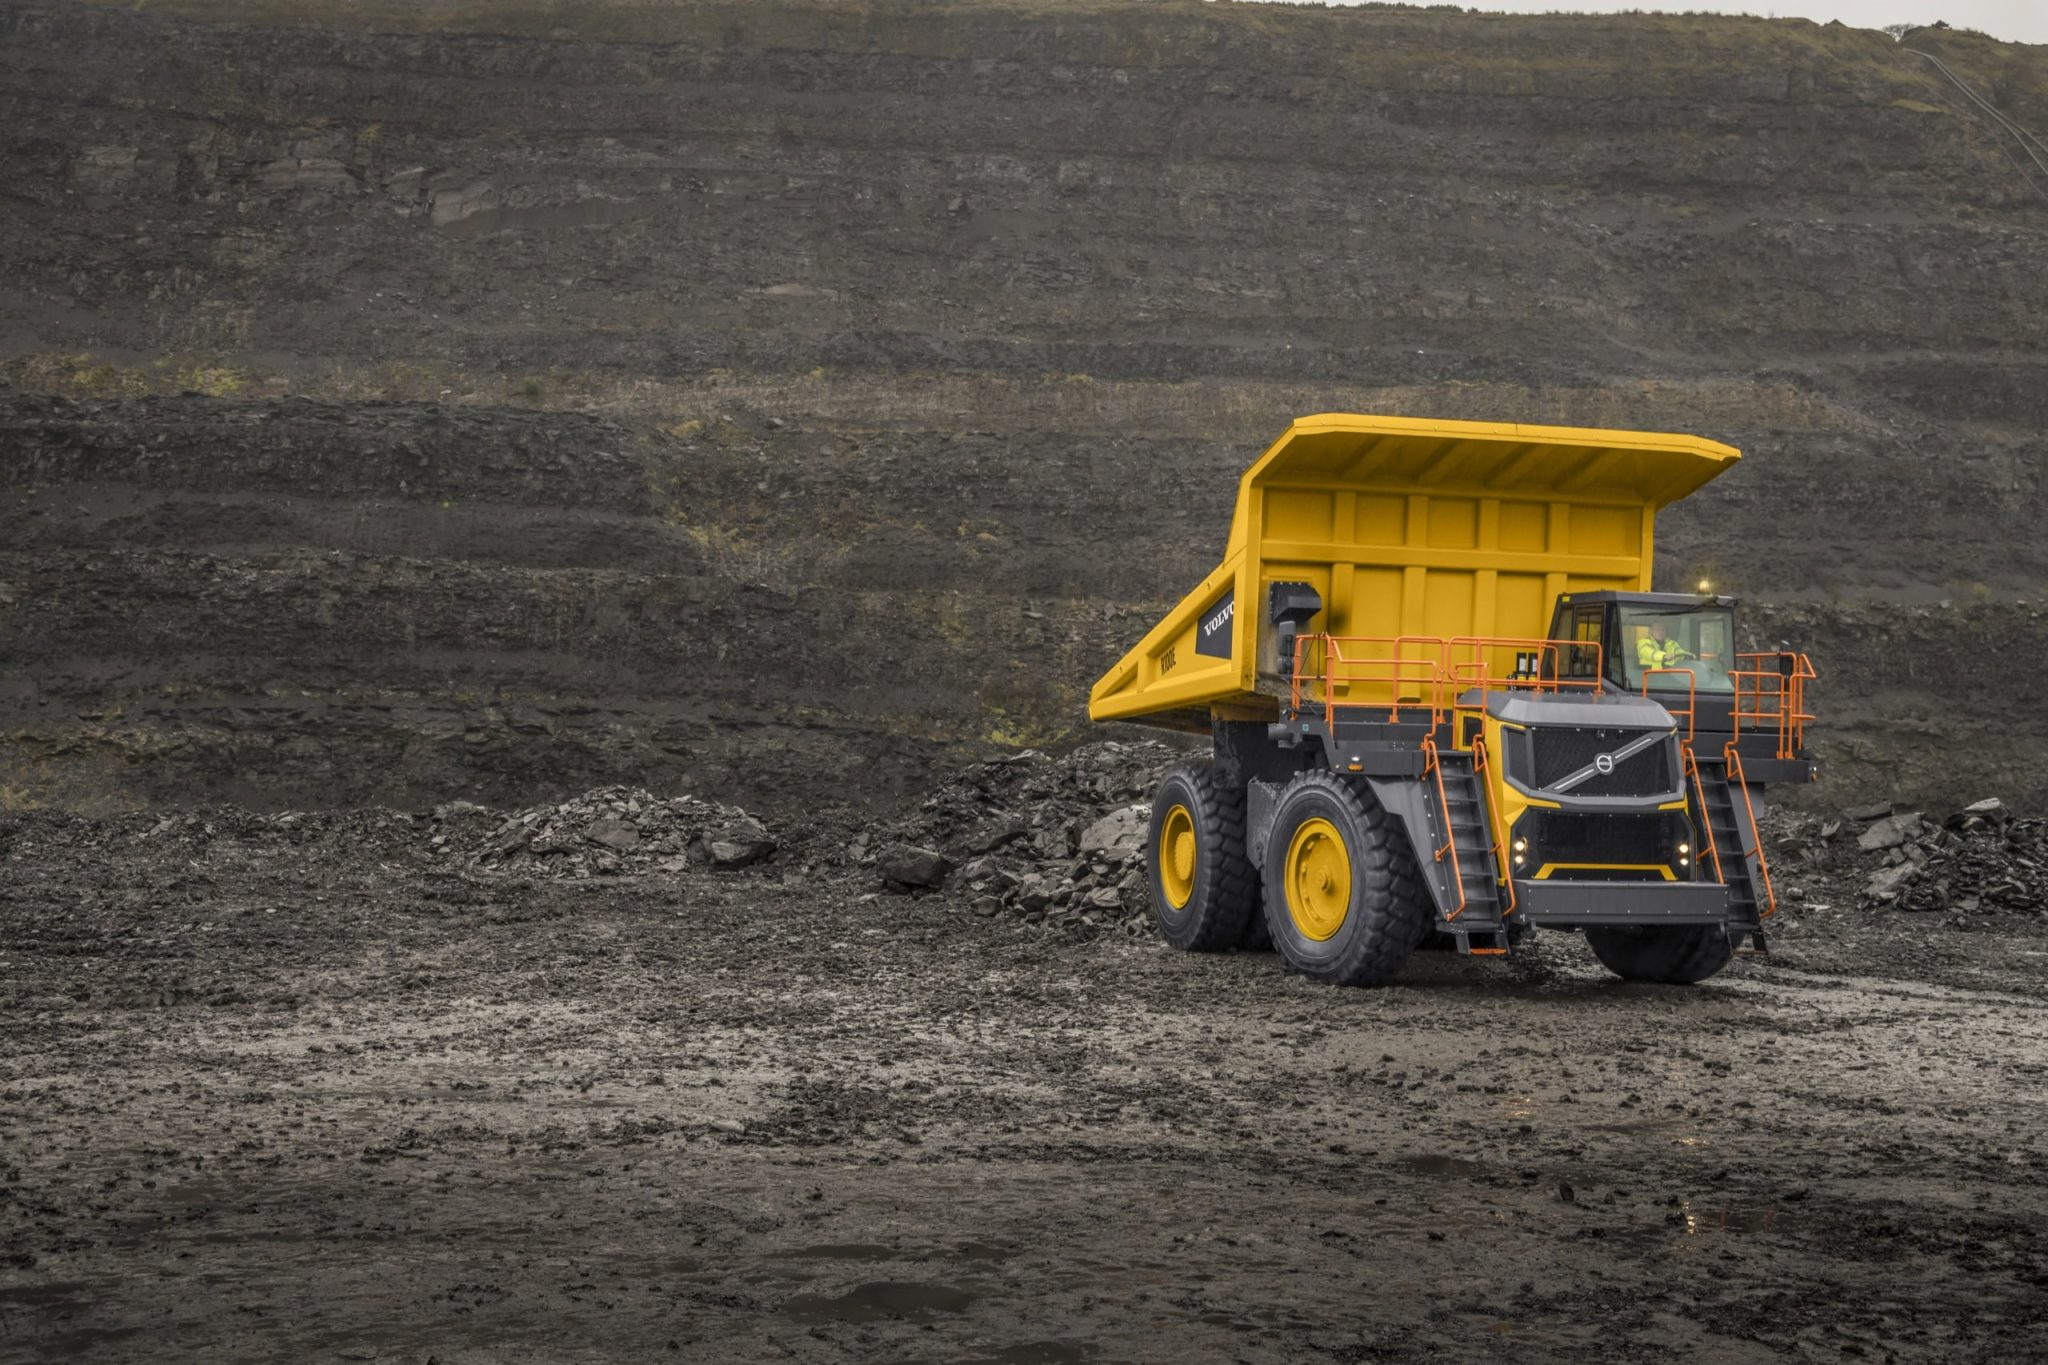 Volvo-Dynamic-Shift-CJD-Rigid-Hauler-Volvo-R100E-12